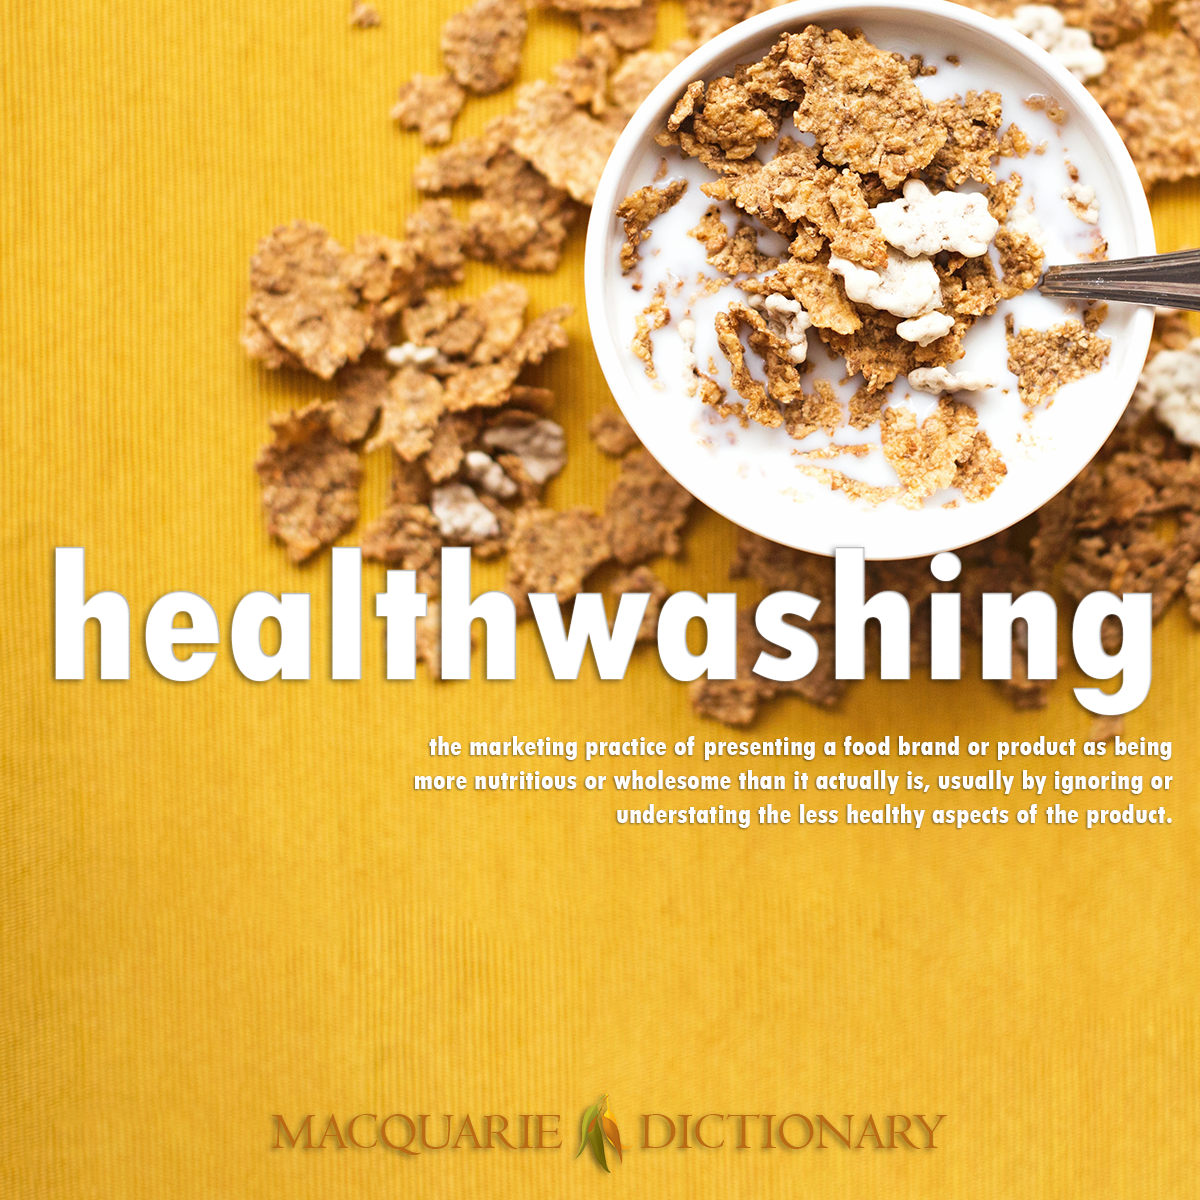 Image of Macquarie Dictionary Word of the Year healthwashing the marketing practice of presenting a food brand or product as being more nutritious or wholesome than it actually is, usually by ignoring or understating the less healthy aspects of the product.